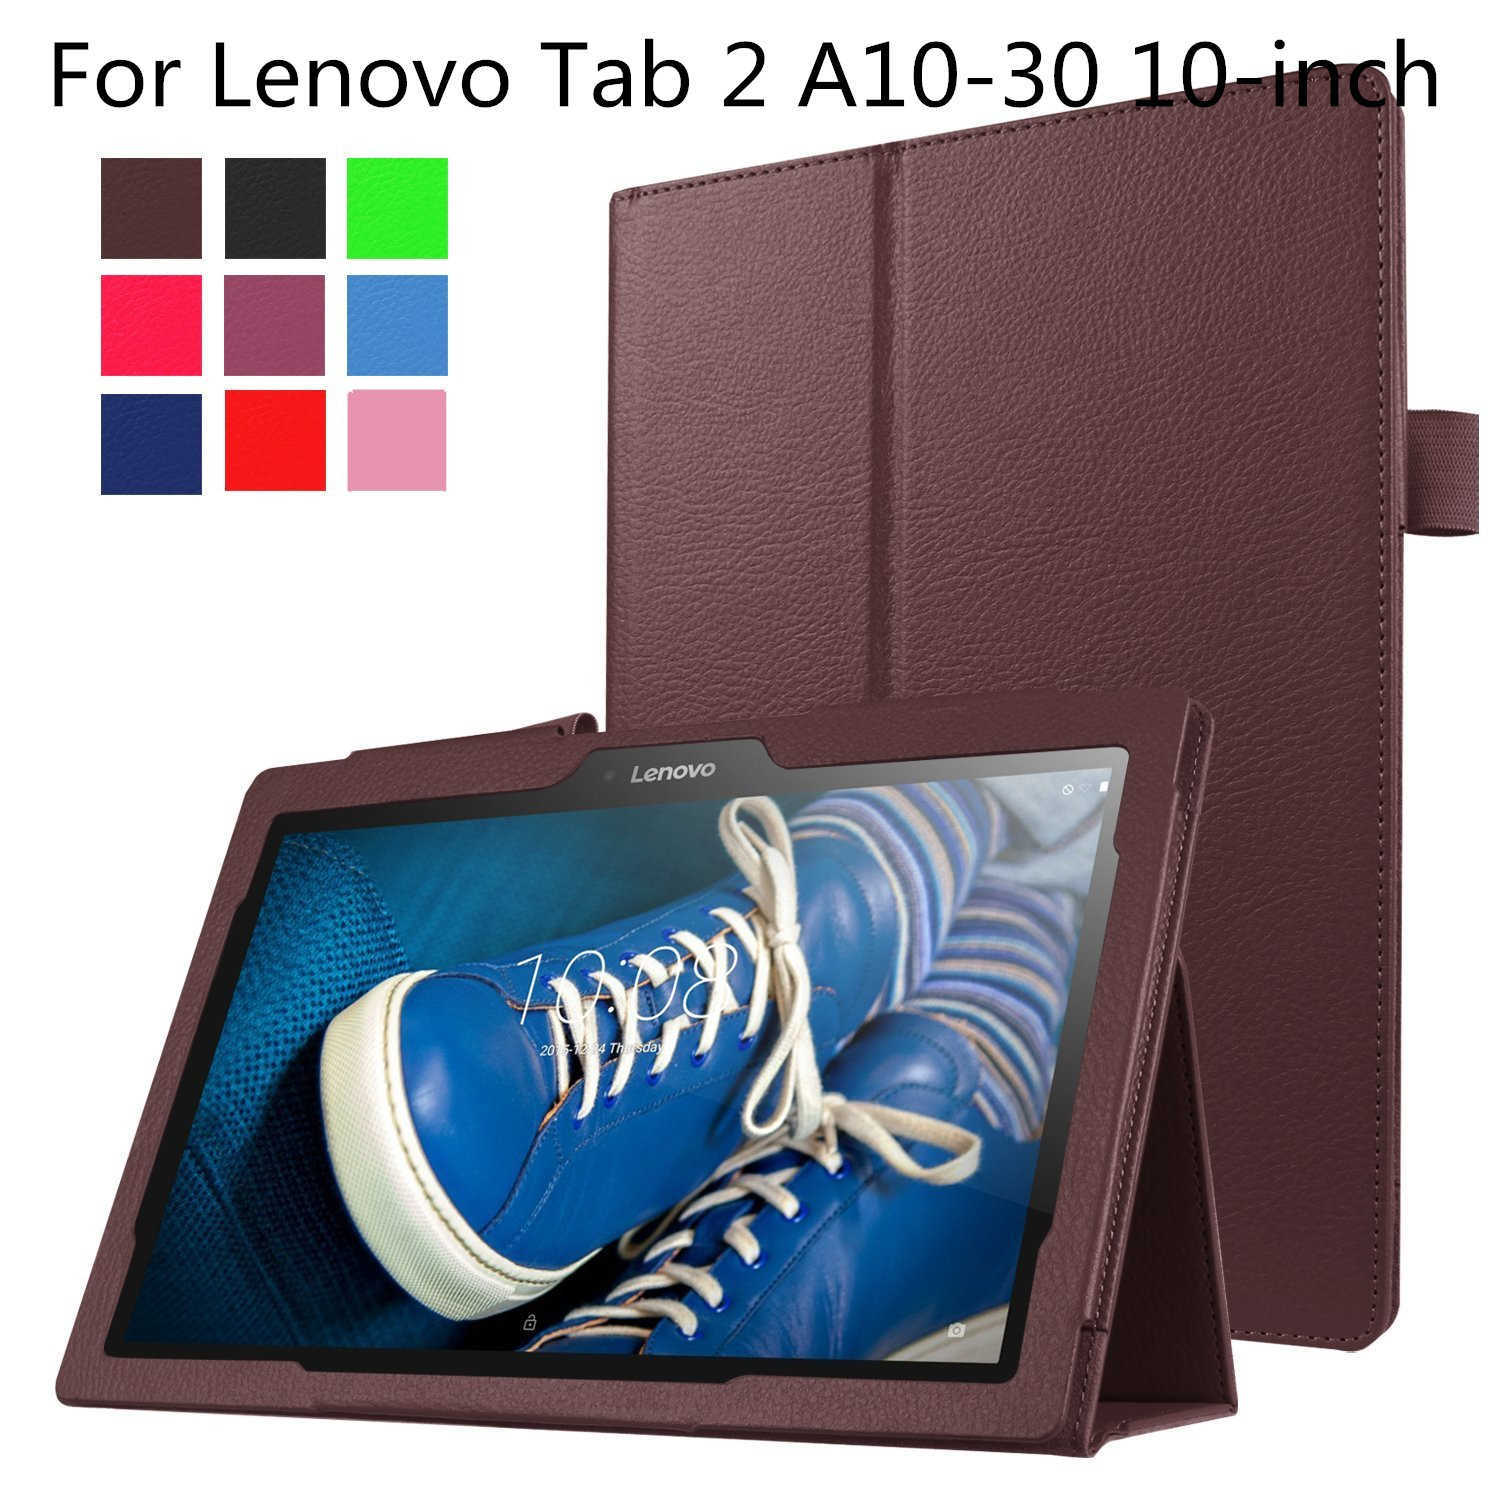 For Lenovo Tab 2 A10-30 10-Inch,PU Leather Slim Fit Premium Vegan Leather Cover Case for Lenovo Tab 2 A10-30 10inch Tablet tab2 a10 30 lichee pattern pu leather case for lenovo tab 2 x30 x30f x30m a10 30 flip tablet cover protector stylus